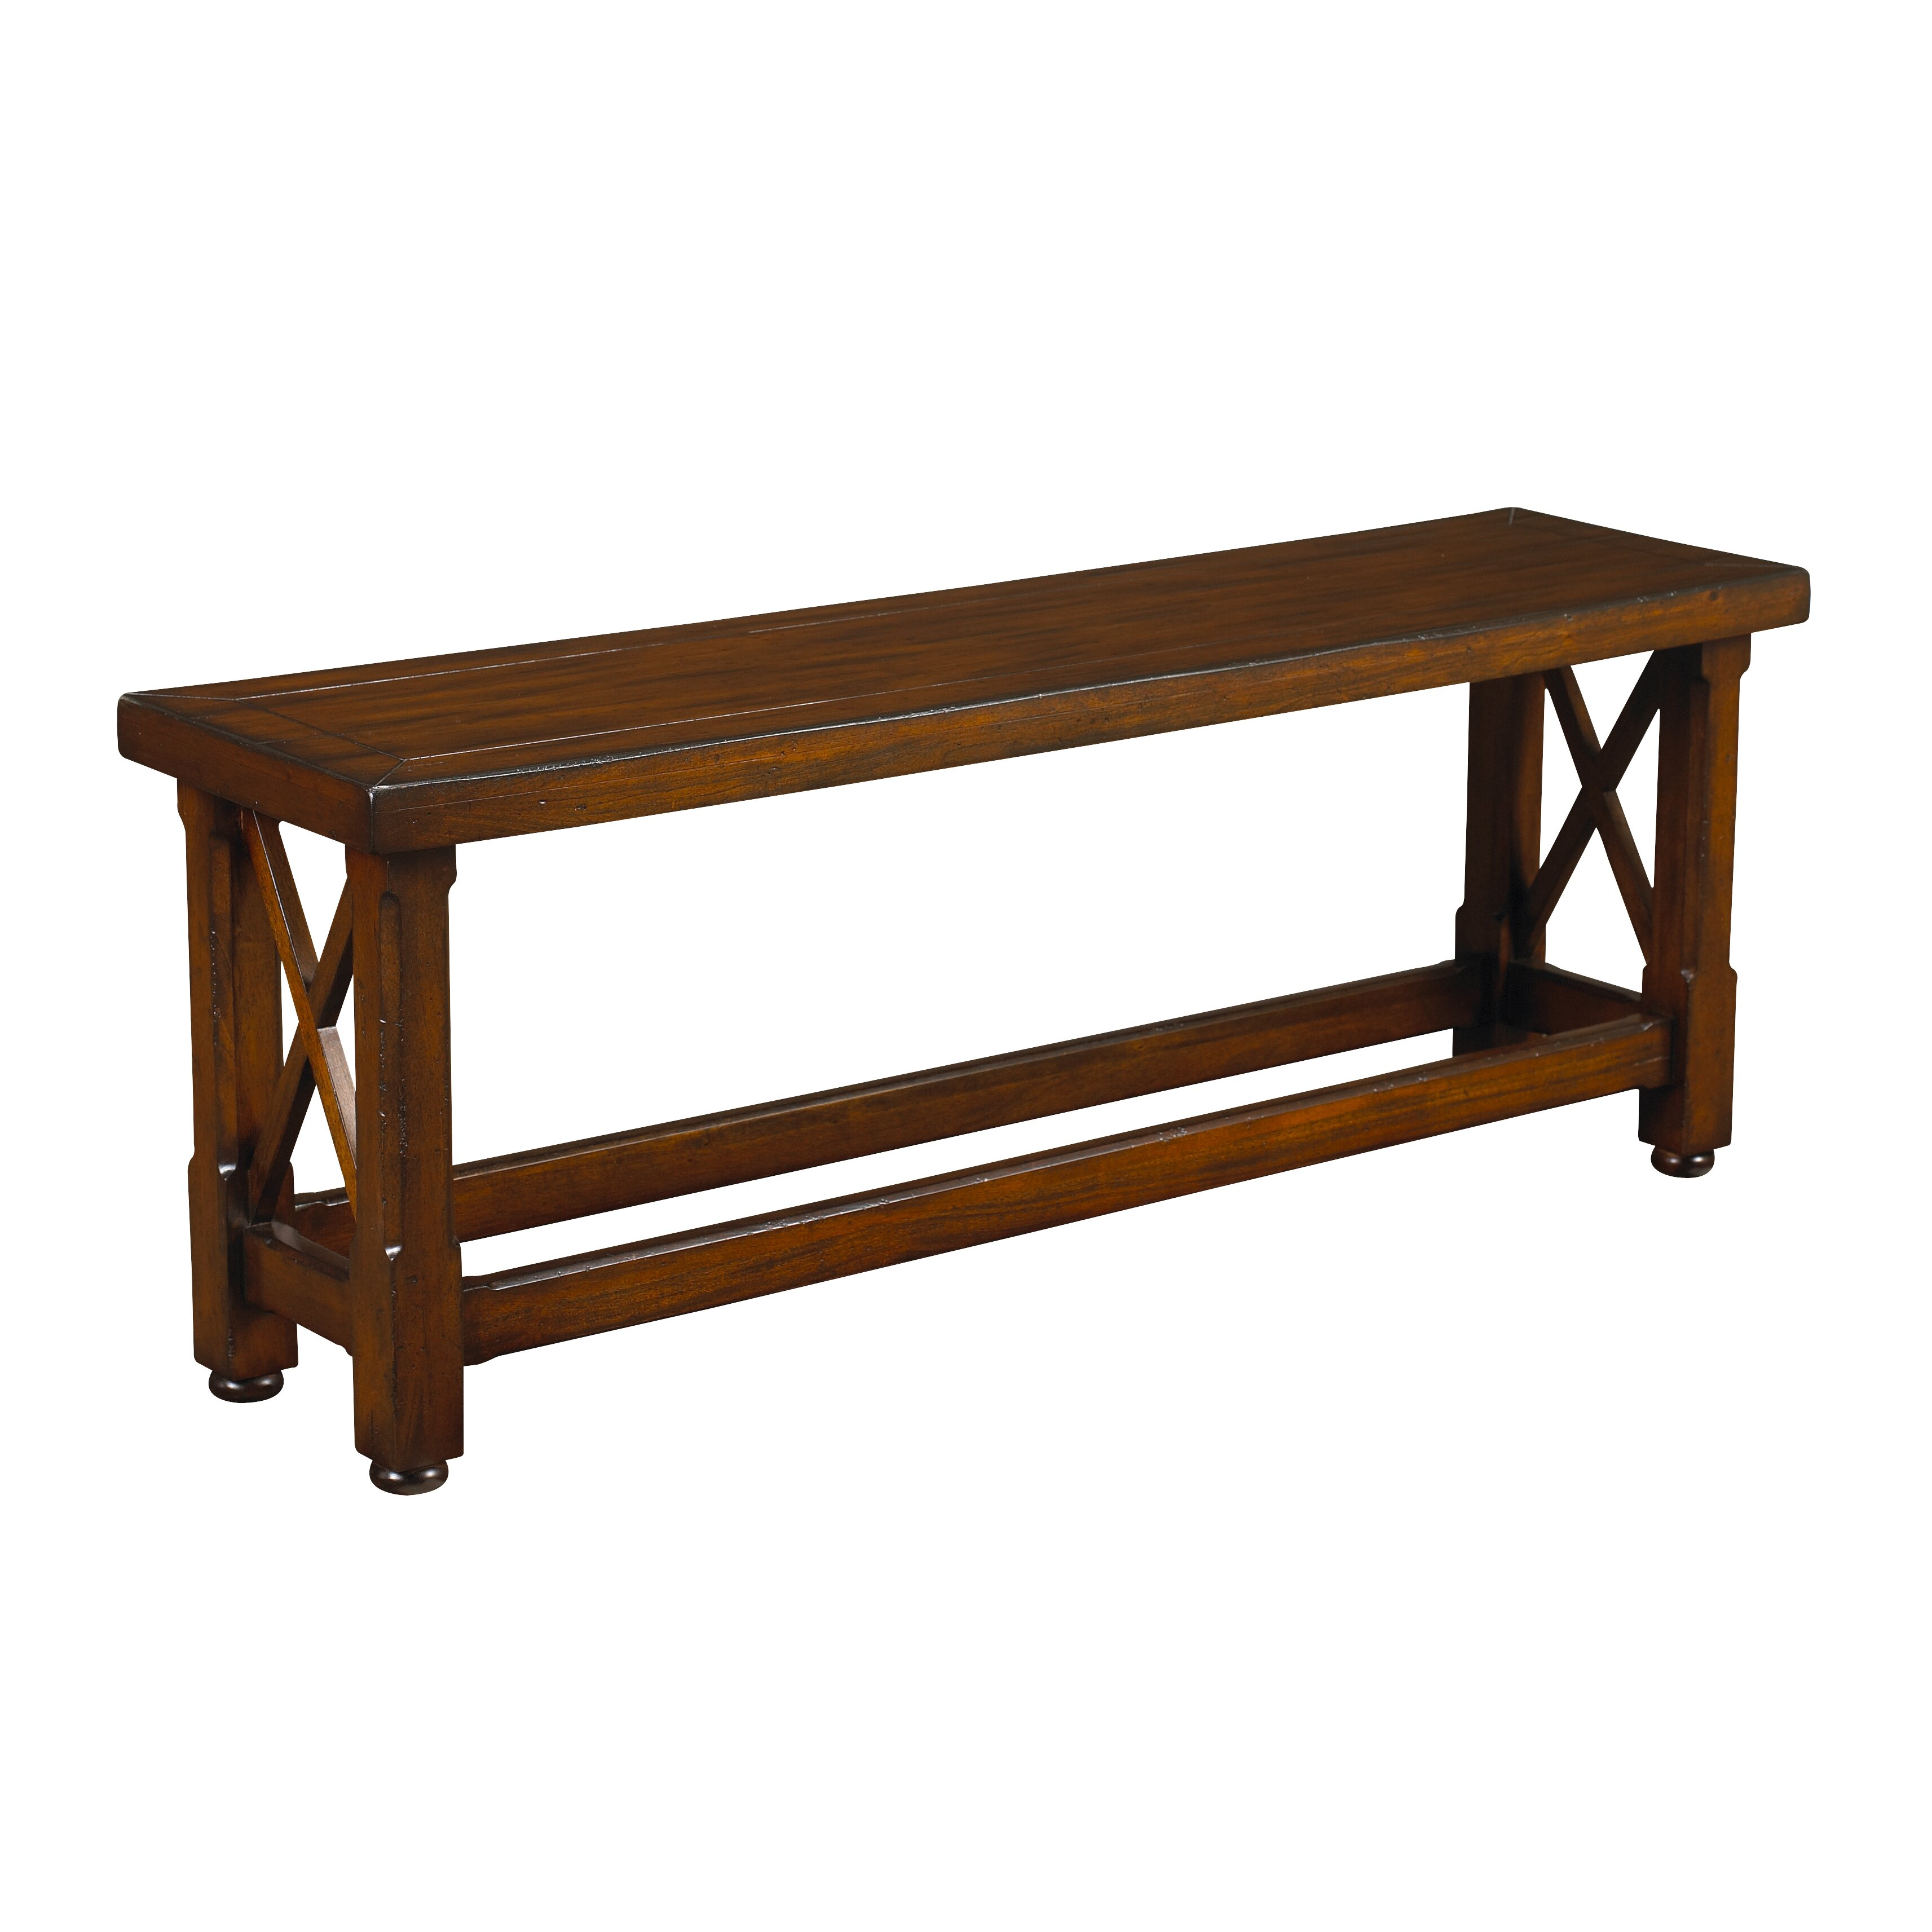 Chasseur Wood Kitchen Bench